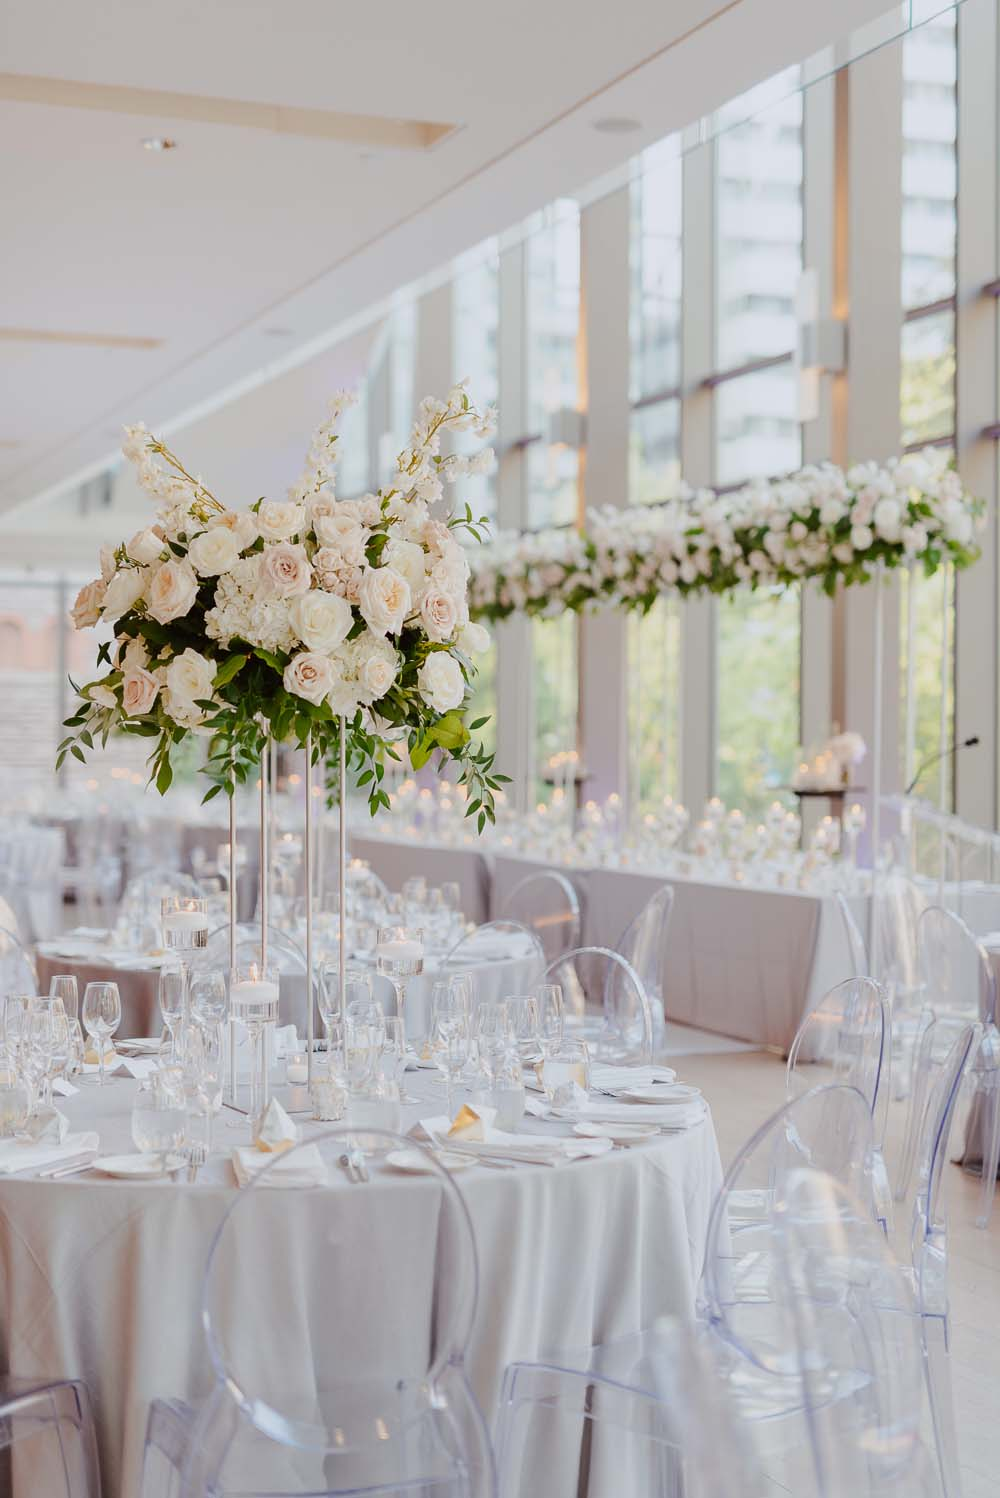 An Opulent Wedding At The Royal Conservatory Of Music - tablescape